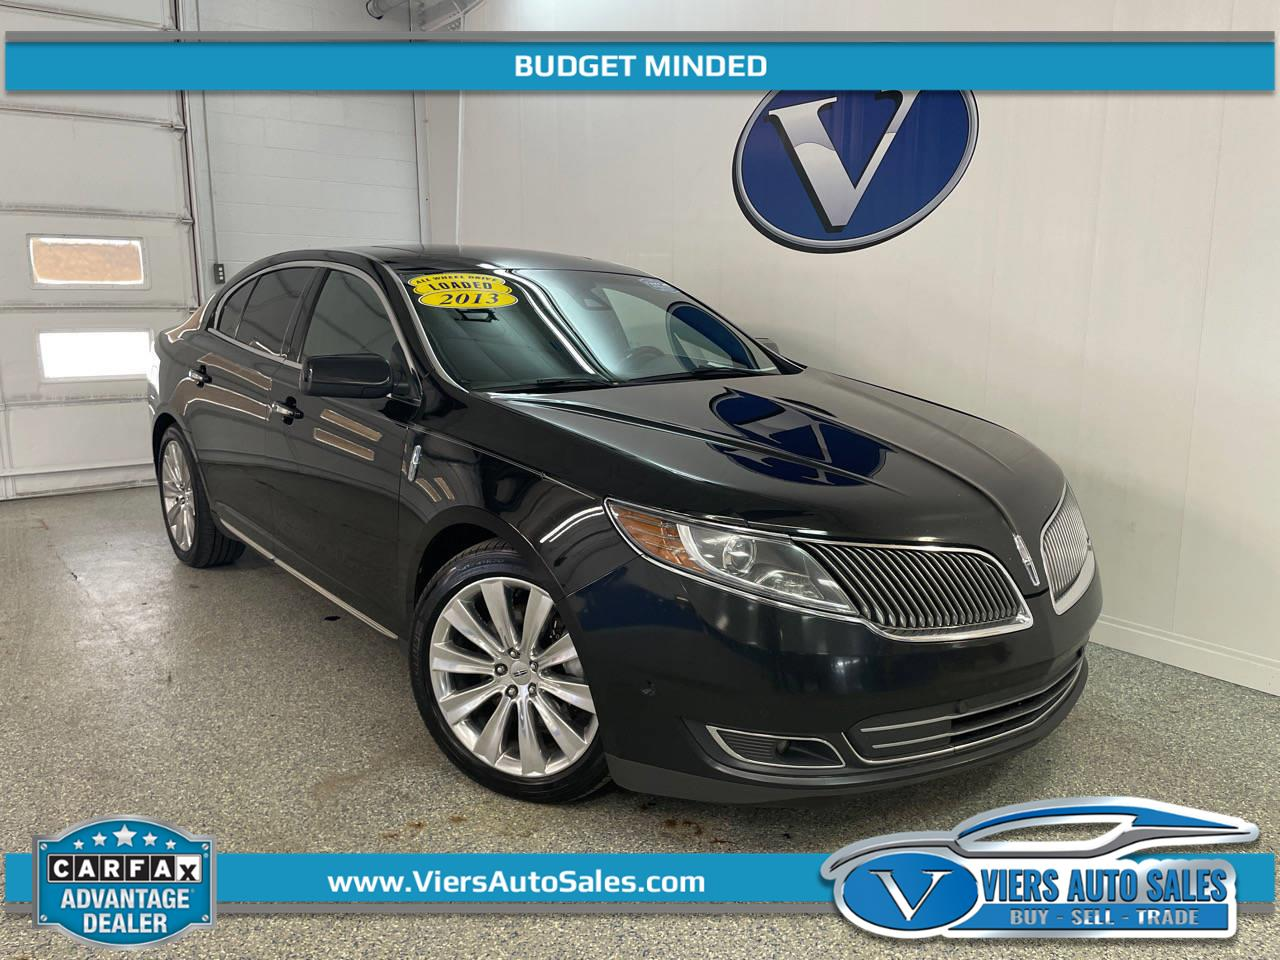 2013 Lincoln MKS EcoBoost 4WD